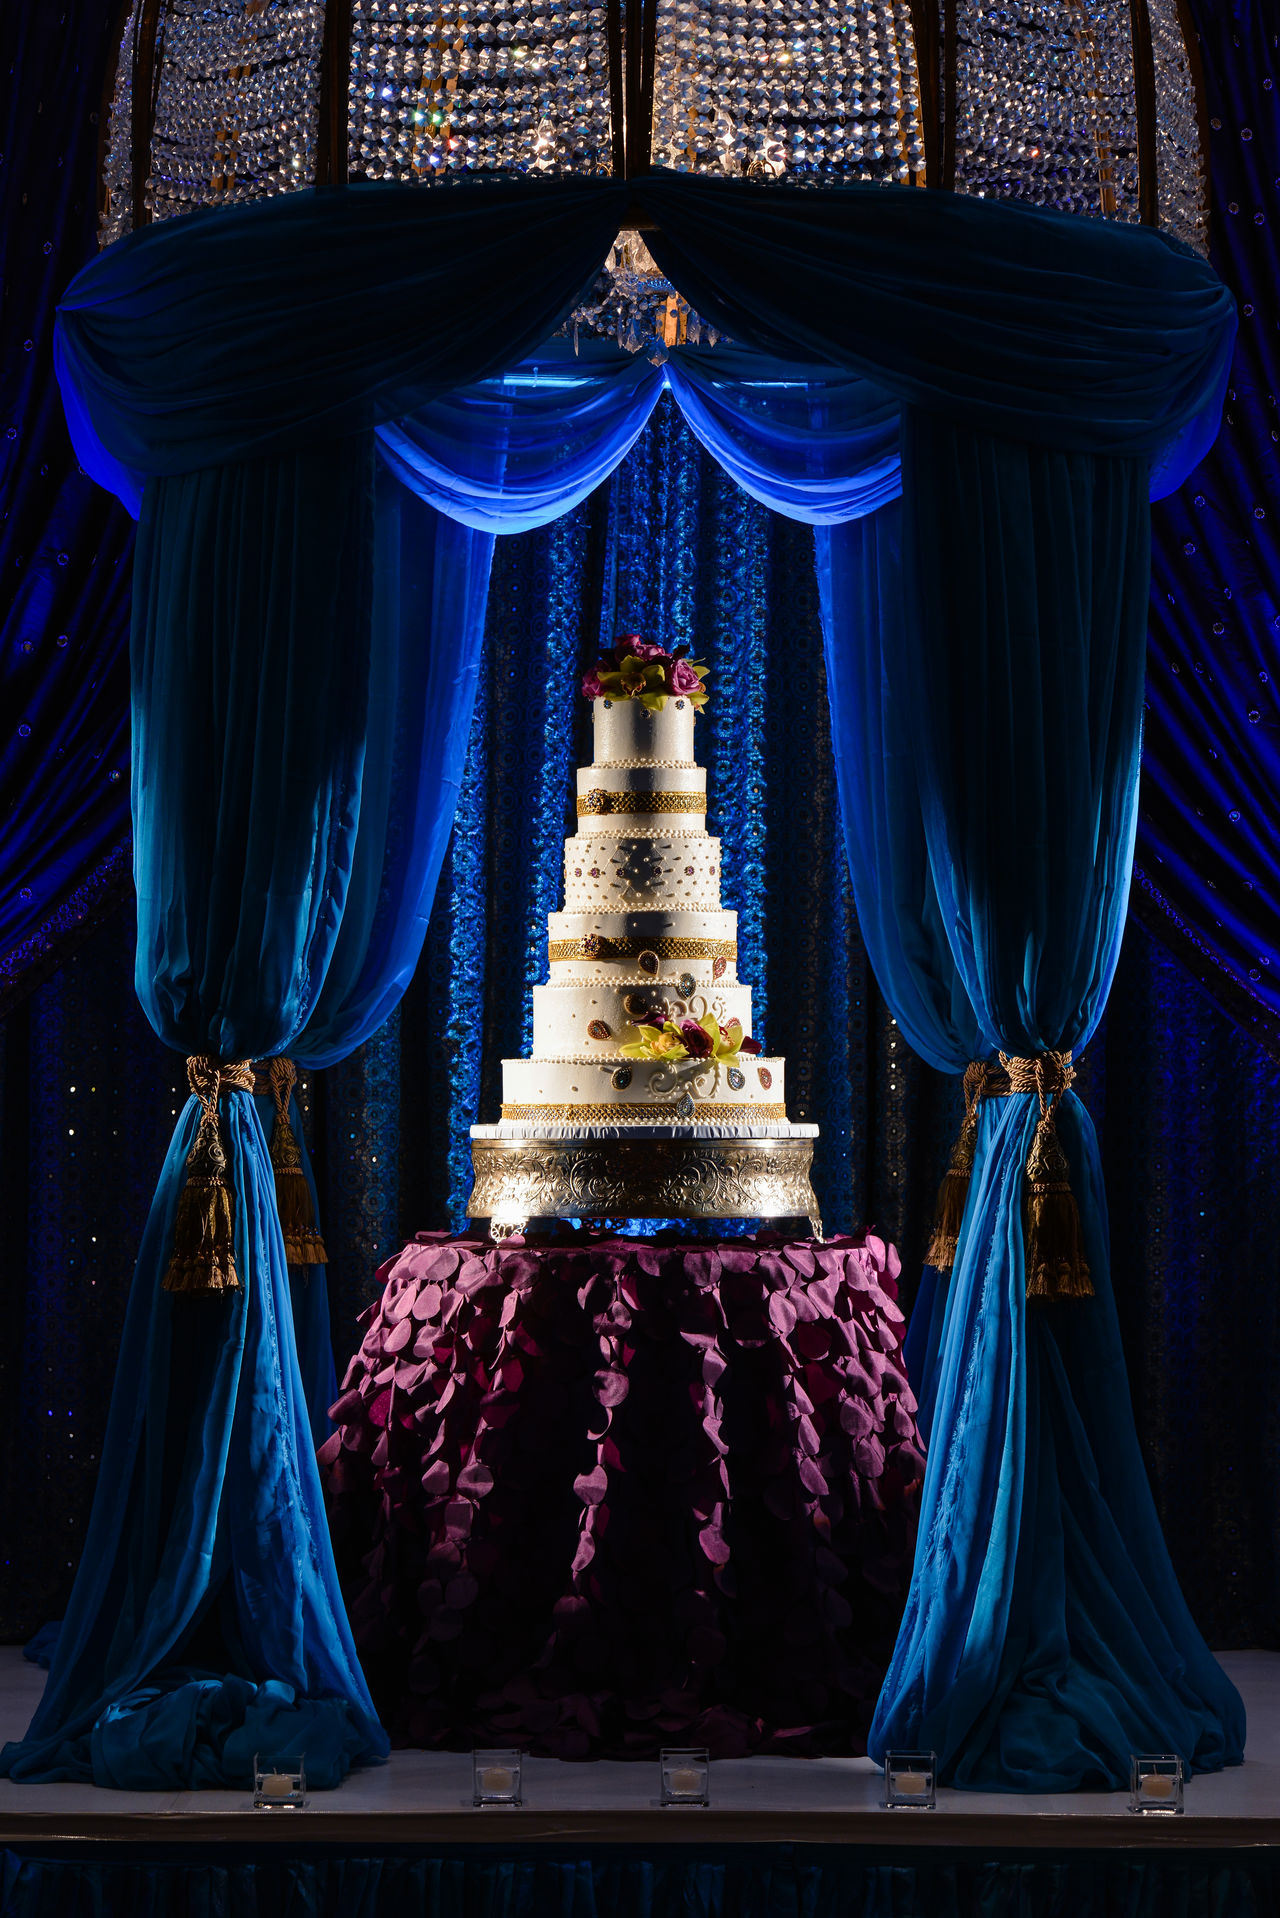 Wedding Cake Baked Cake Ceremony Dessert Frosted Icing Indoors  Love No People Tradition Wedding Cake